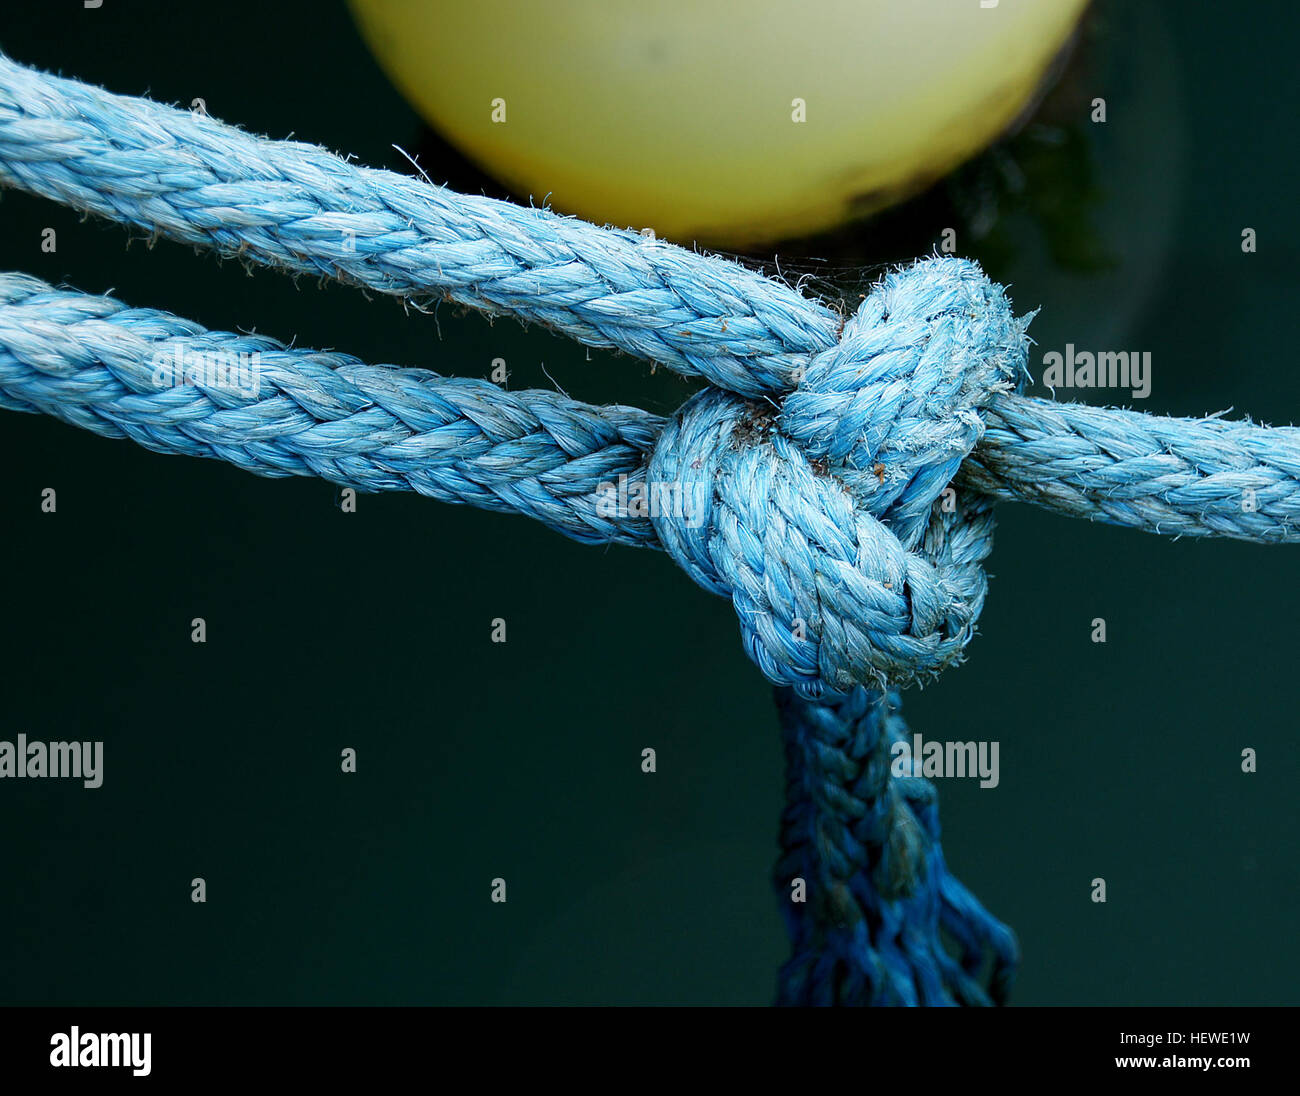 ication (,),,,boats,fasteners,knots,ropes,ties - Stock Image